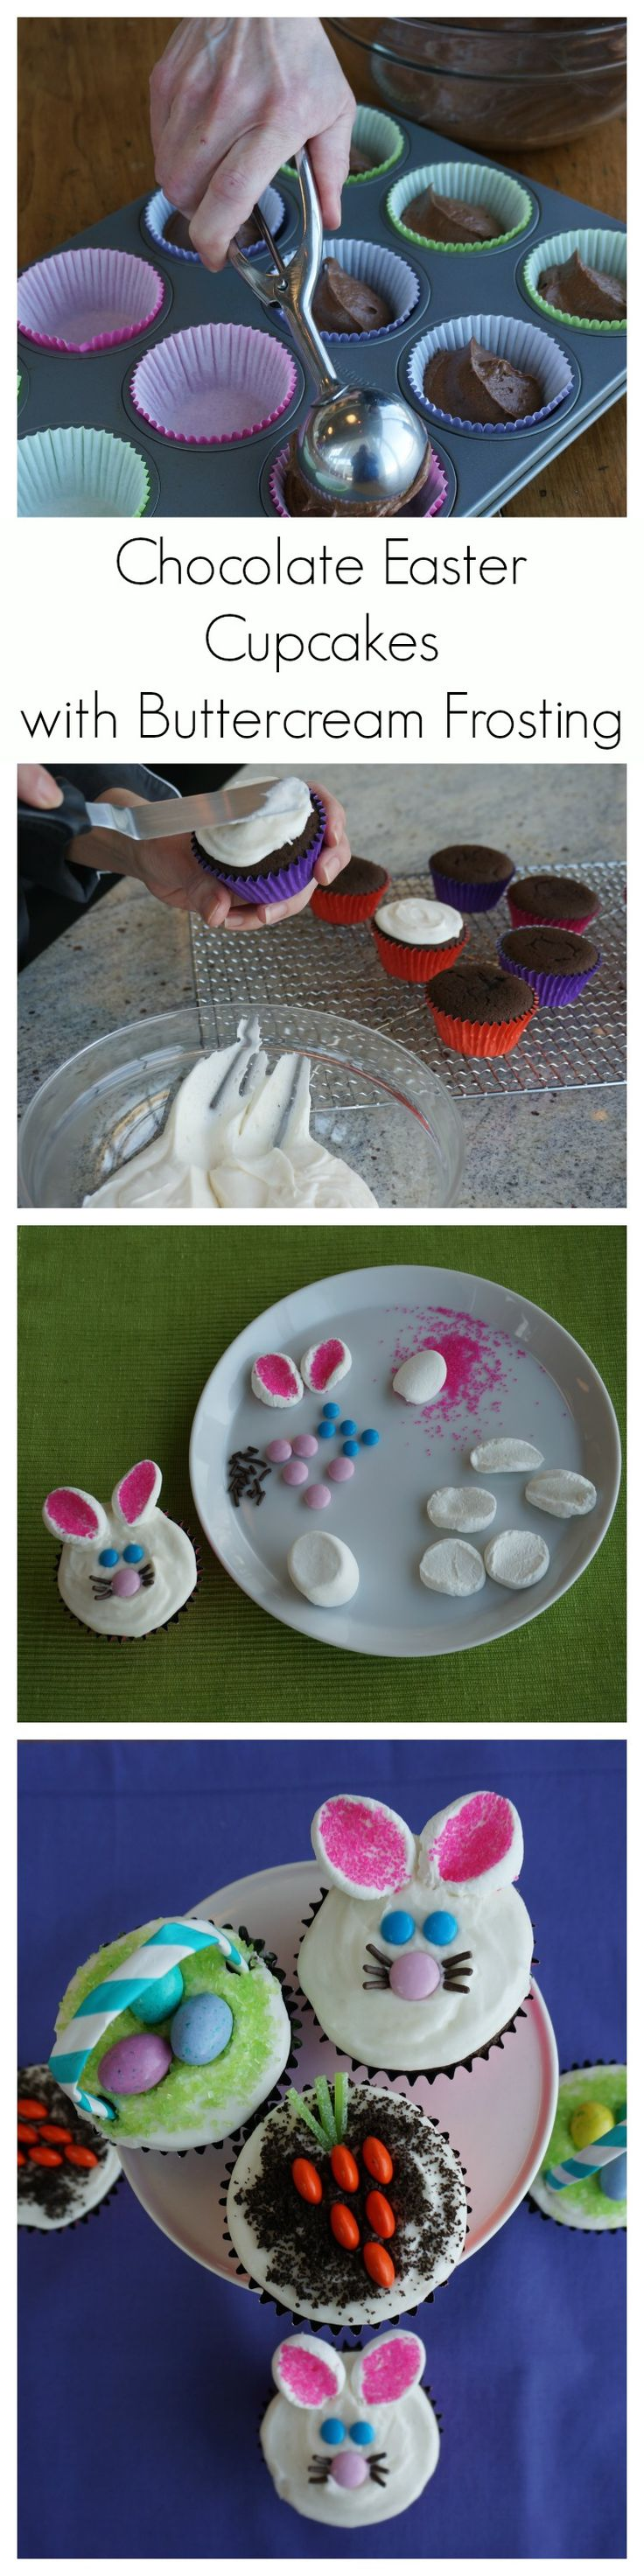 Try our most popular chocolate cupcakes with buttercream frosting. With our great decorating options, they are an easy and fun Easter project to do with the kids.